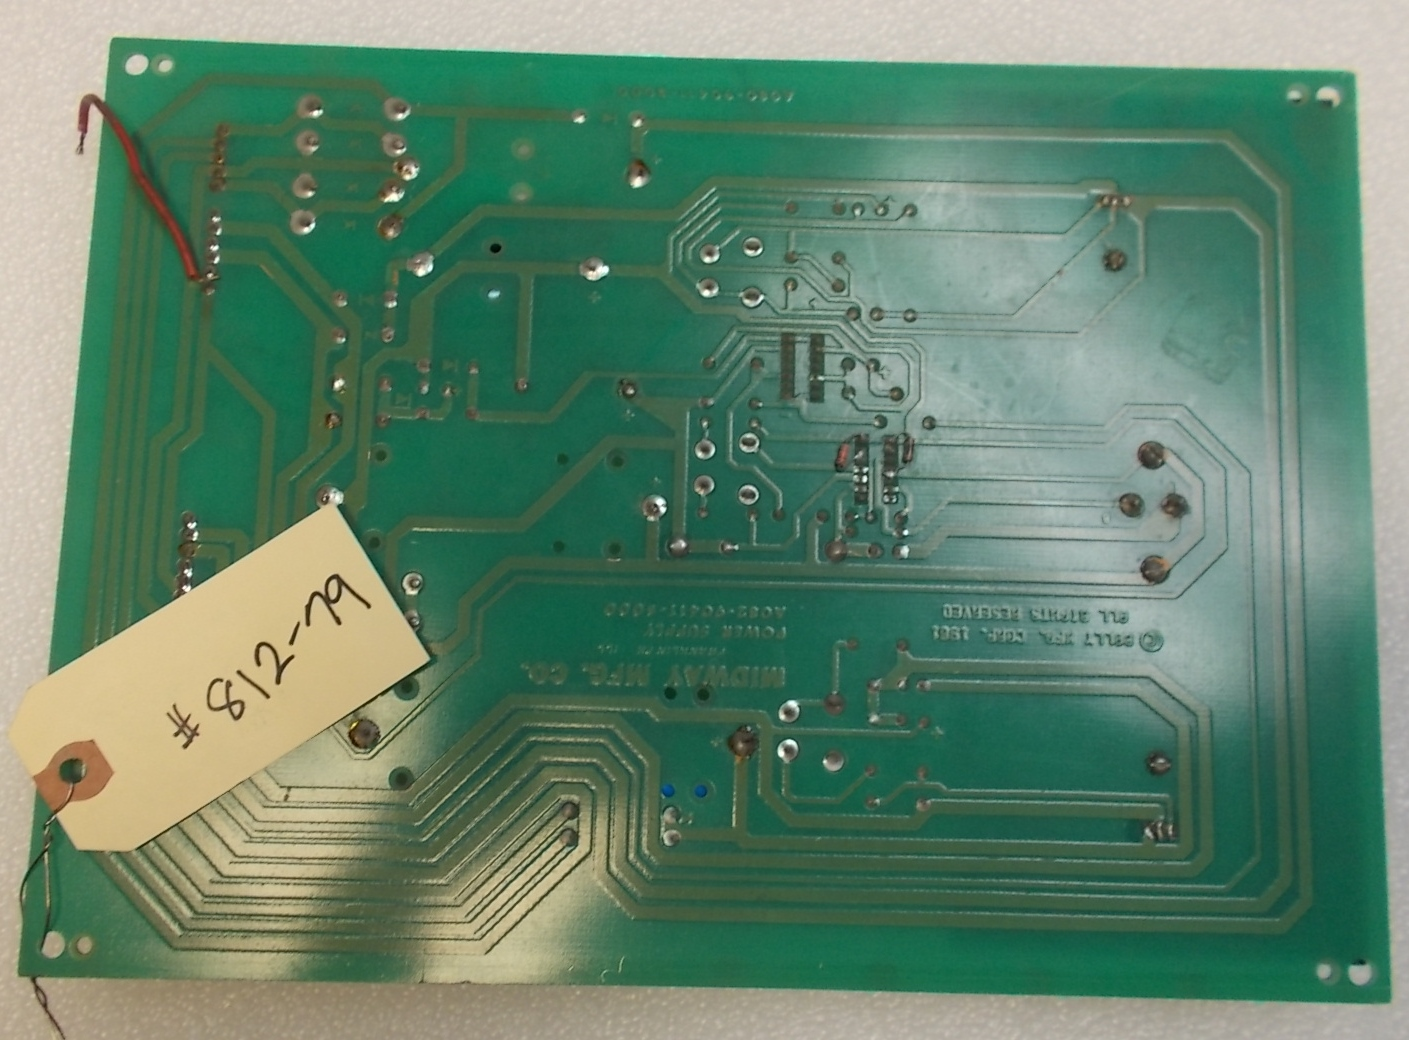 Midway Power Supply Arcade Machine Game PCB Printed